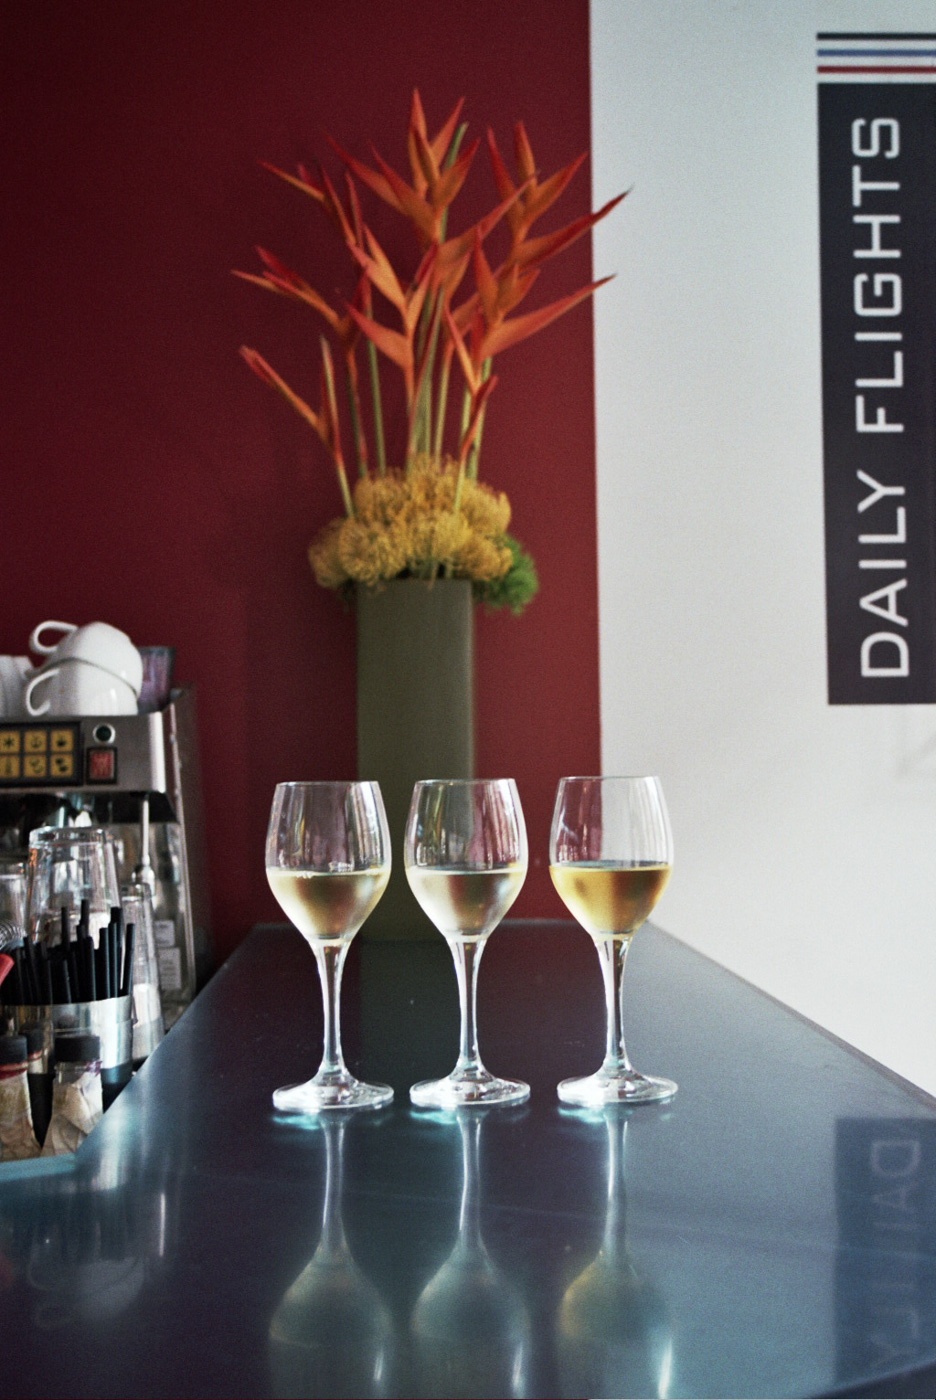 Daily Flight at Jet Wine Bar